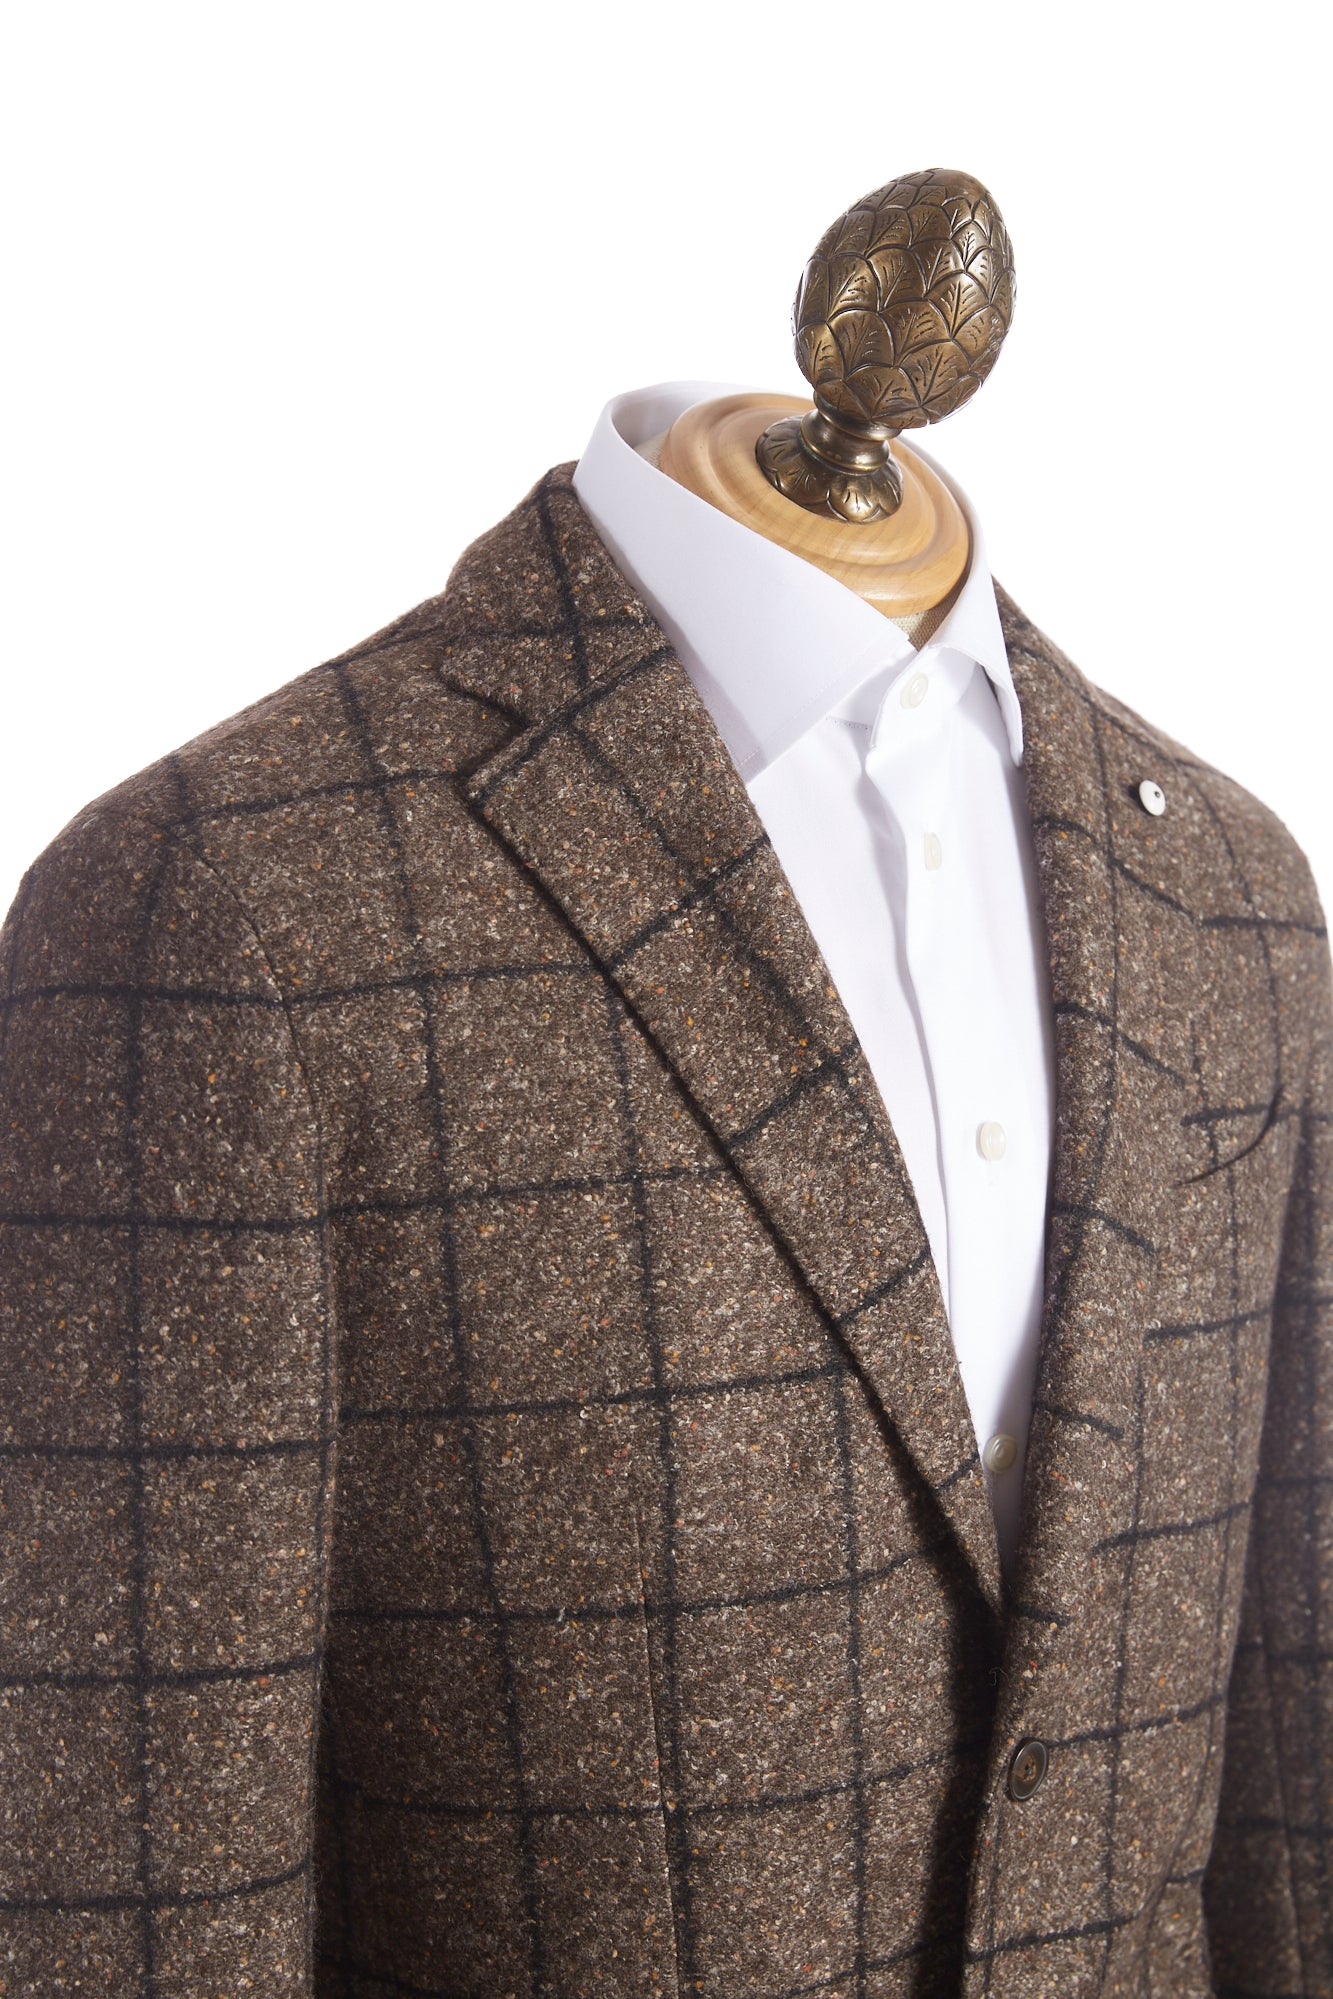 L.B.M. 1911 Brown Donegal Windowpane Sport Jacket - Sport Jackets - L.B.M. 1911 - LALONDE's